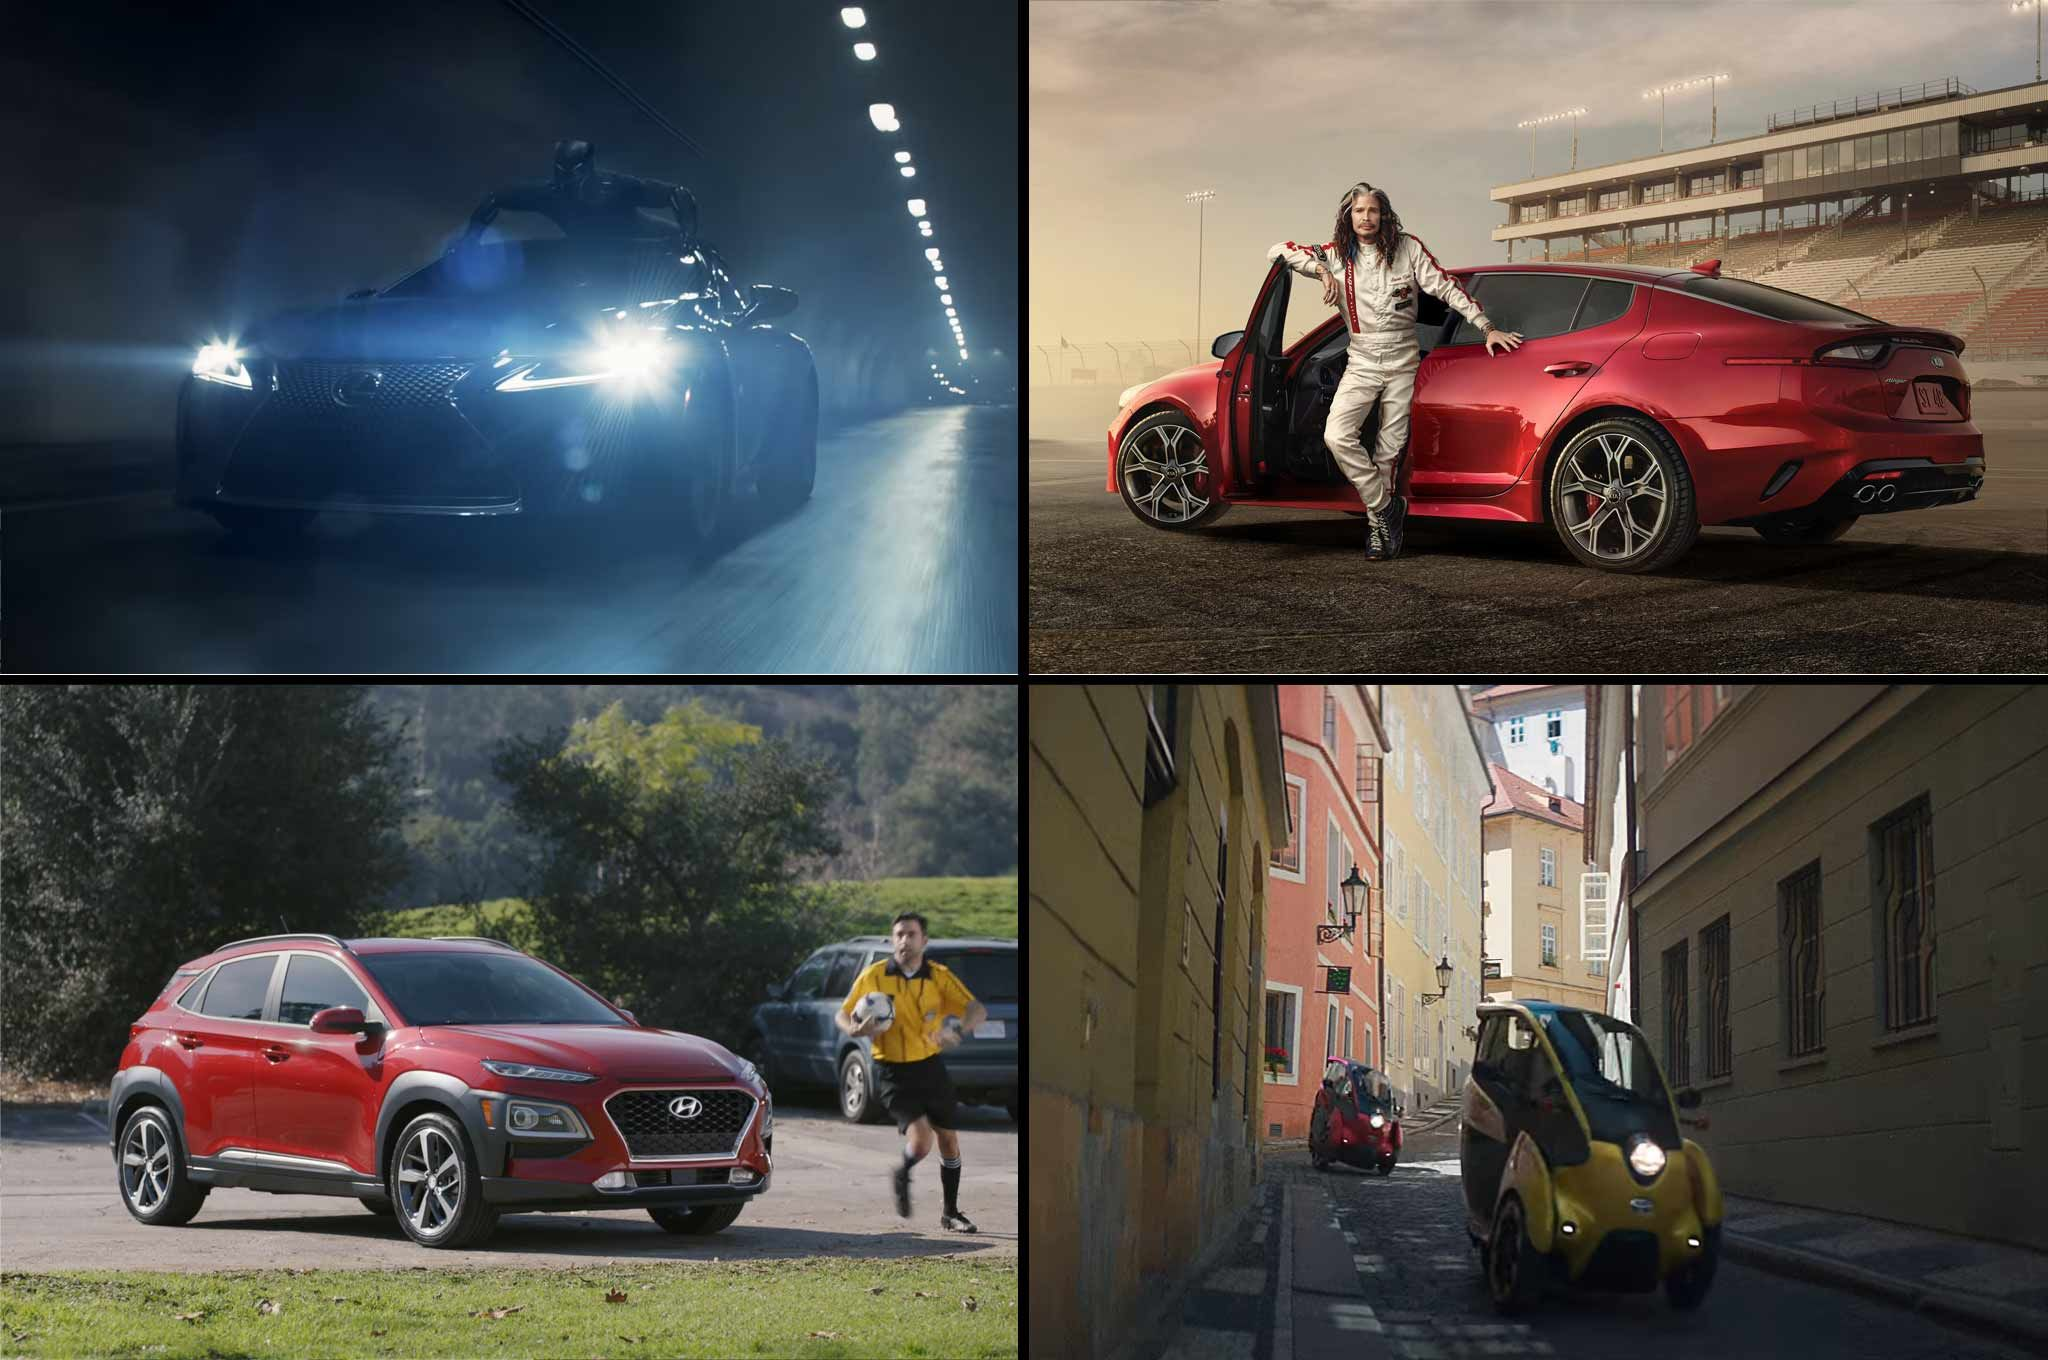 Meet The Super Bowl 2018 Car Commercials Roundup In Case If You Missed It When Cheering For Your Favs Car Super Bowl Super Bowl 2018